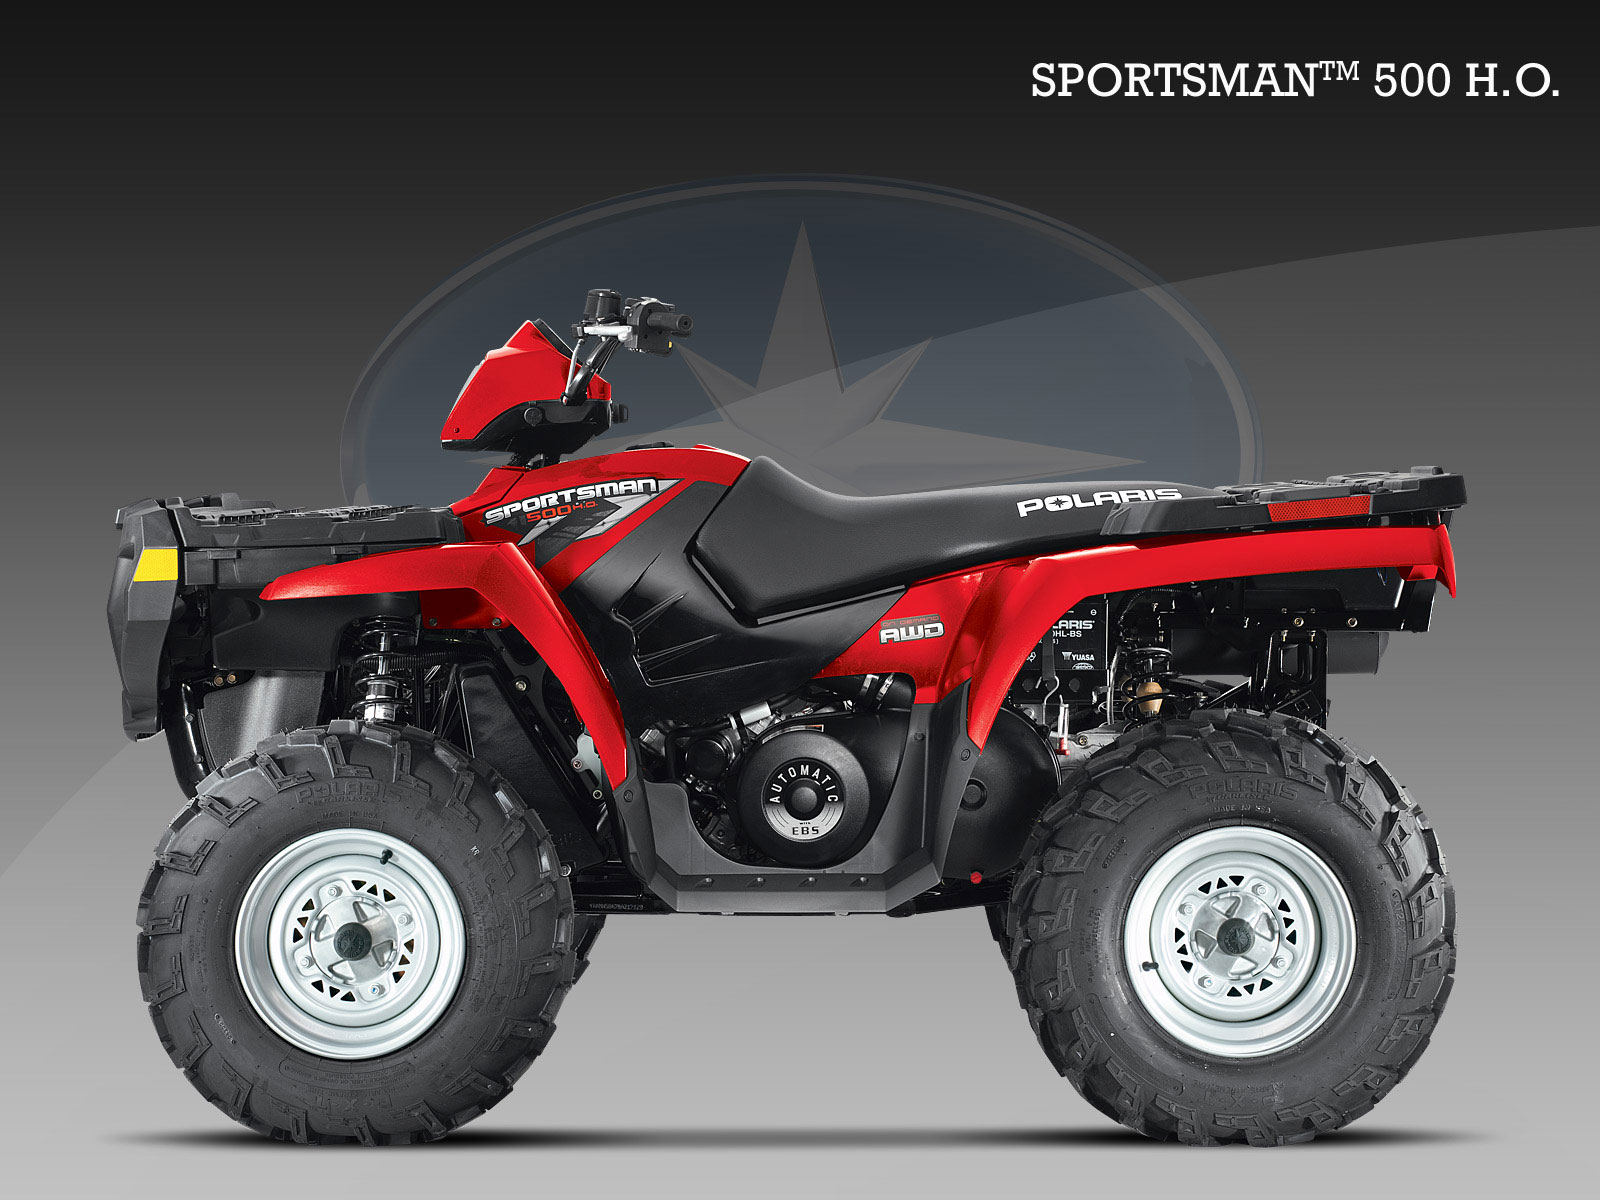 Polaris Sportsman 500 H.O images #120701